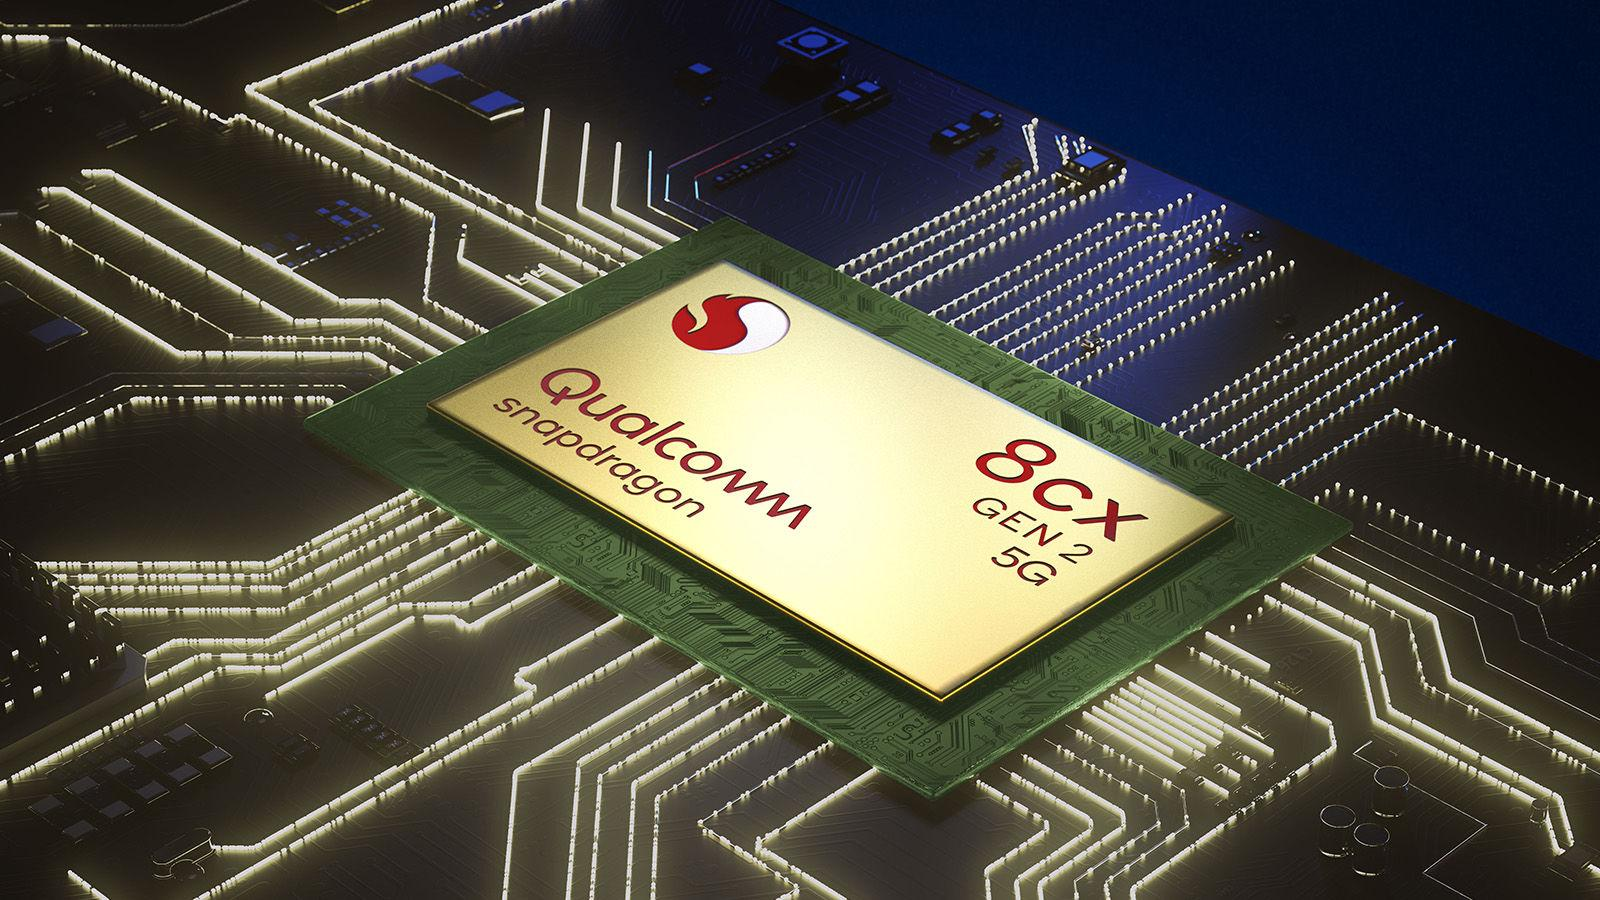 Qualcomm Snapdragon 8cx Gen 2 5G